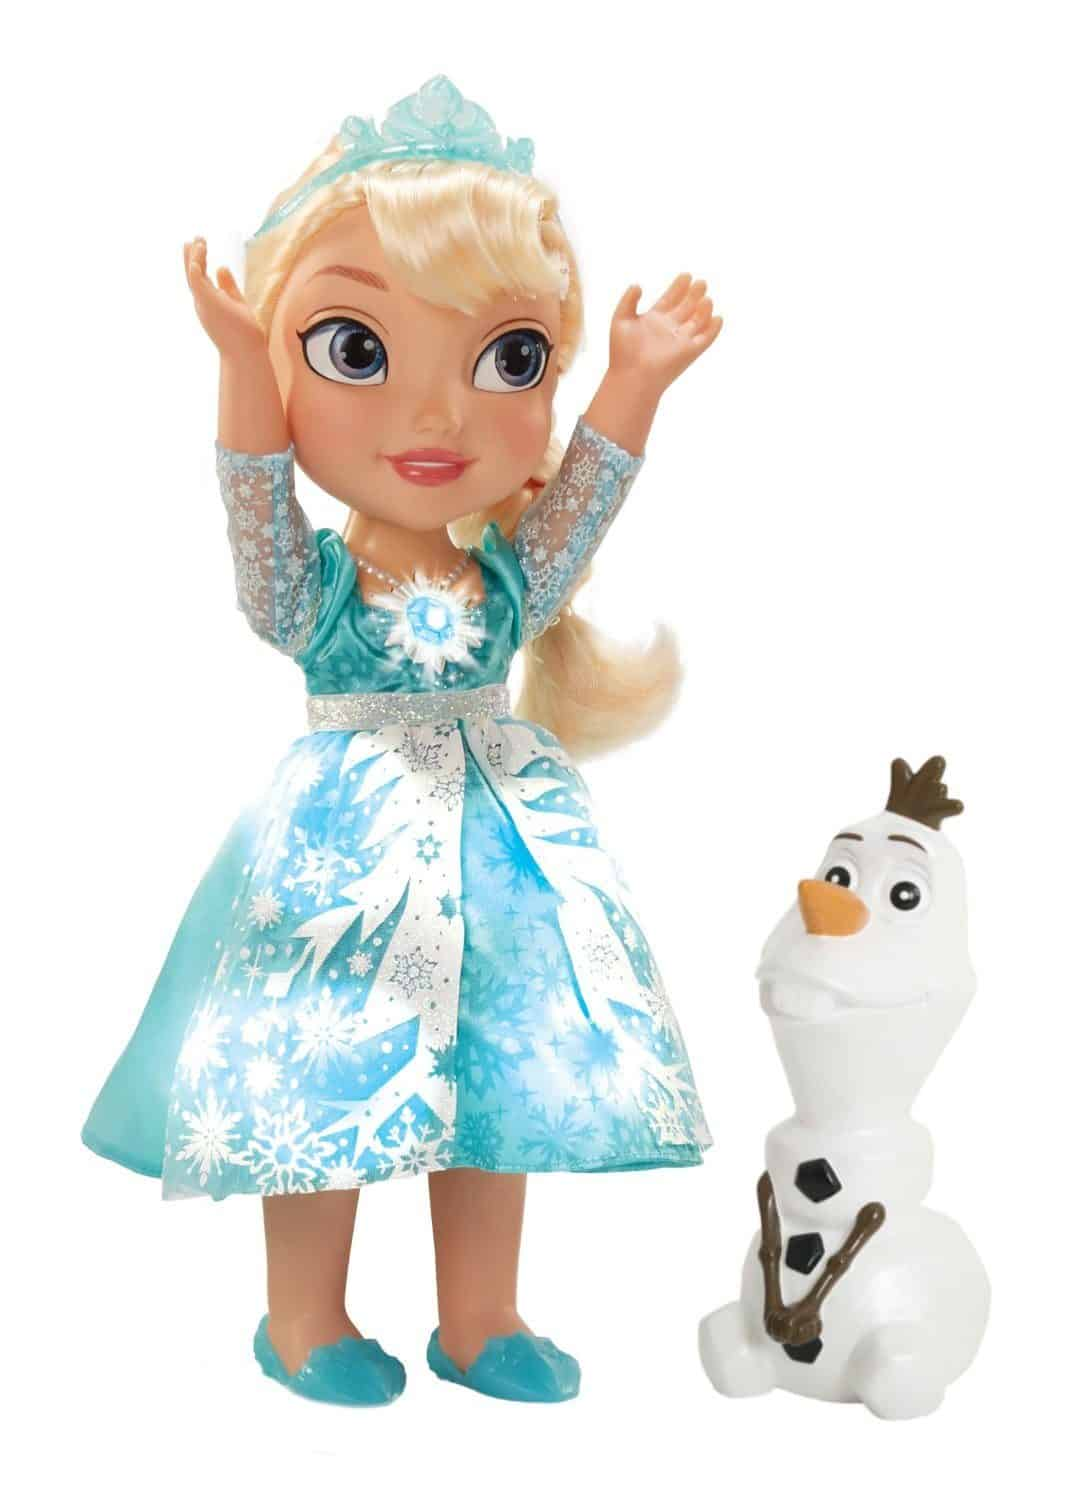 Snow Glow Elsa Singing Doll:  Definitely an Alpha Mom favorite and a Holiday Hot Toy Hit, and we're not surprised it's on the Hot Toy Lists of many of the retailers this holiday season.